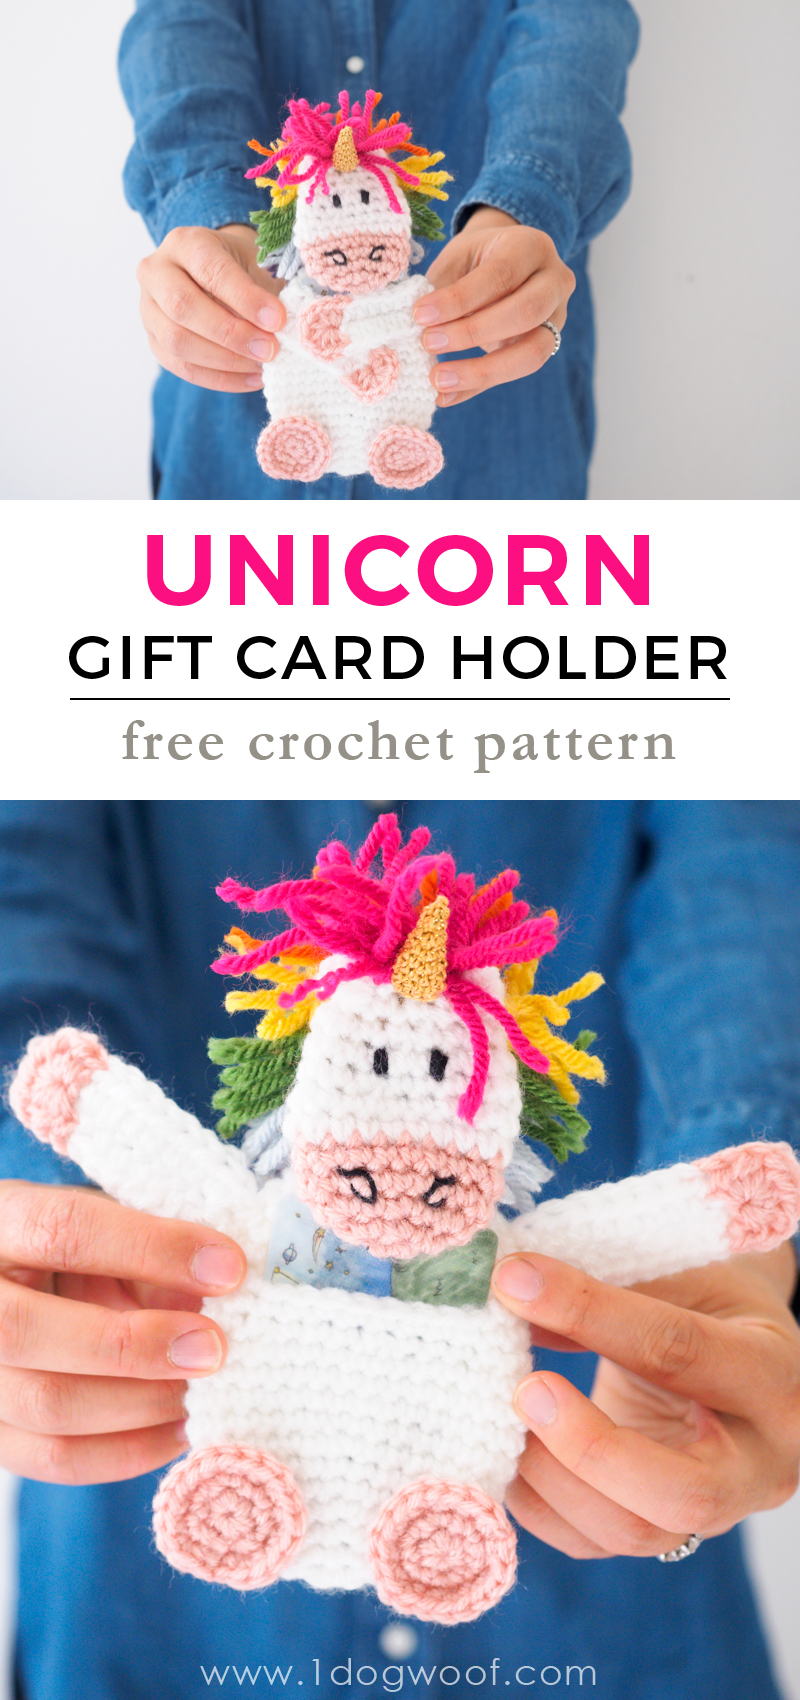 Crochet unicorn gift card holder - to make any gift spectacular! Free crochet pattern at www.1dogwoof.com